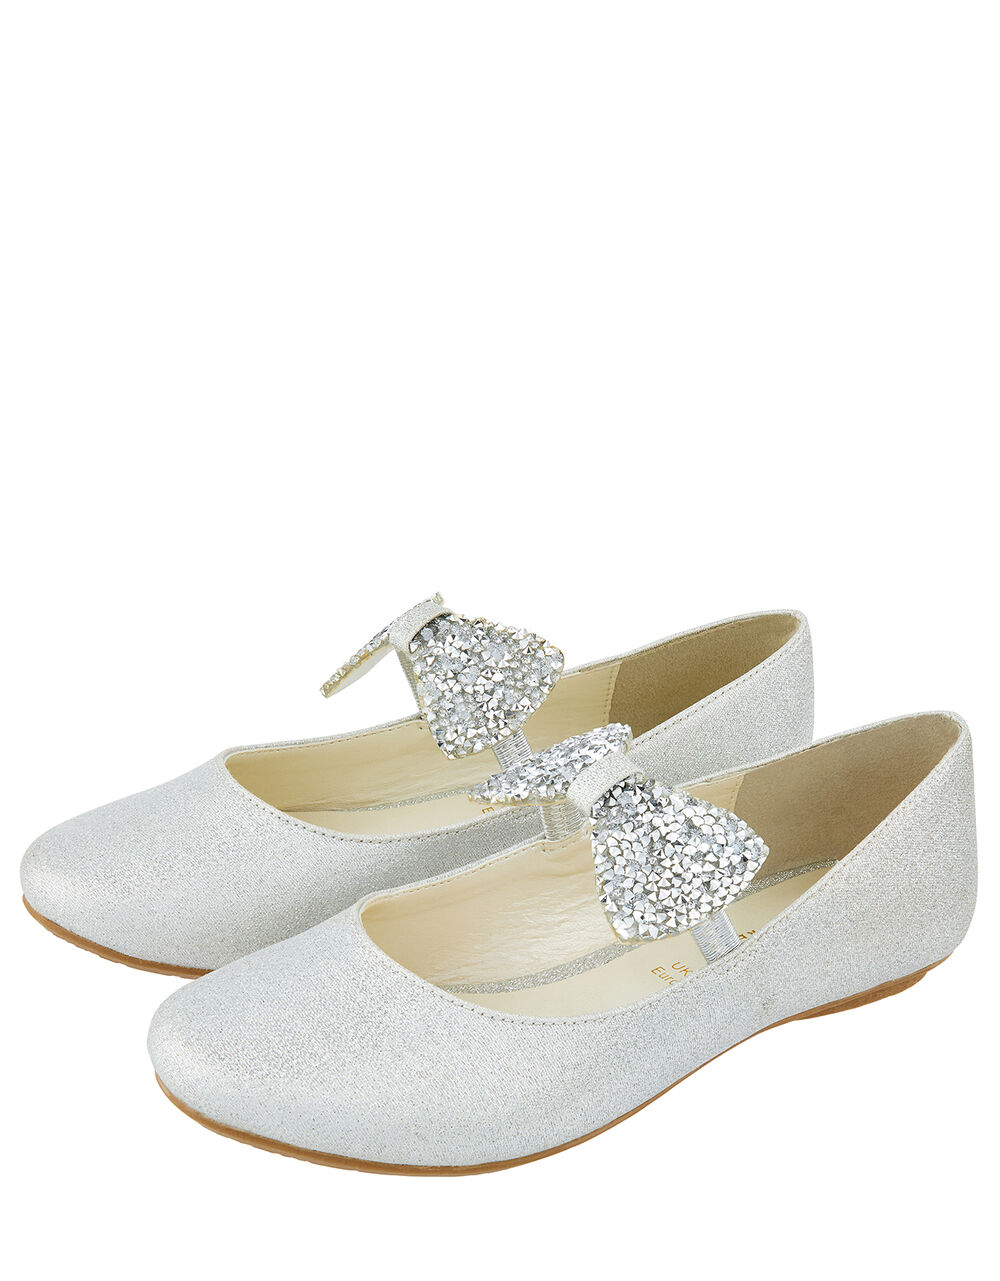 Everly Dazzle Bow Glitter Shoes, Silver (SILVER), large